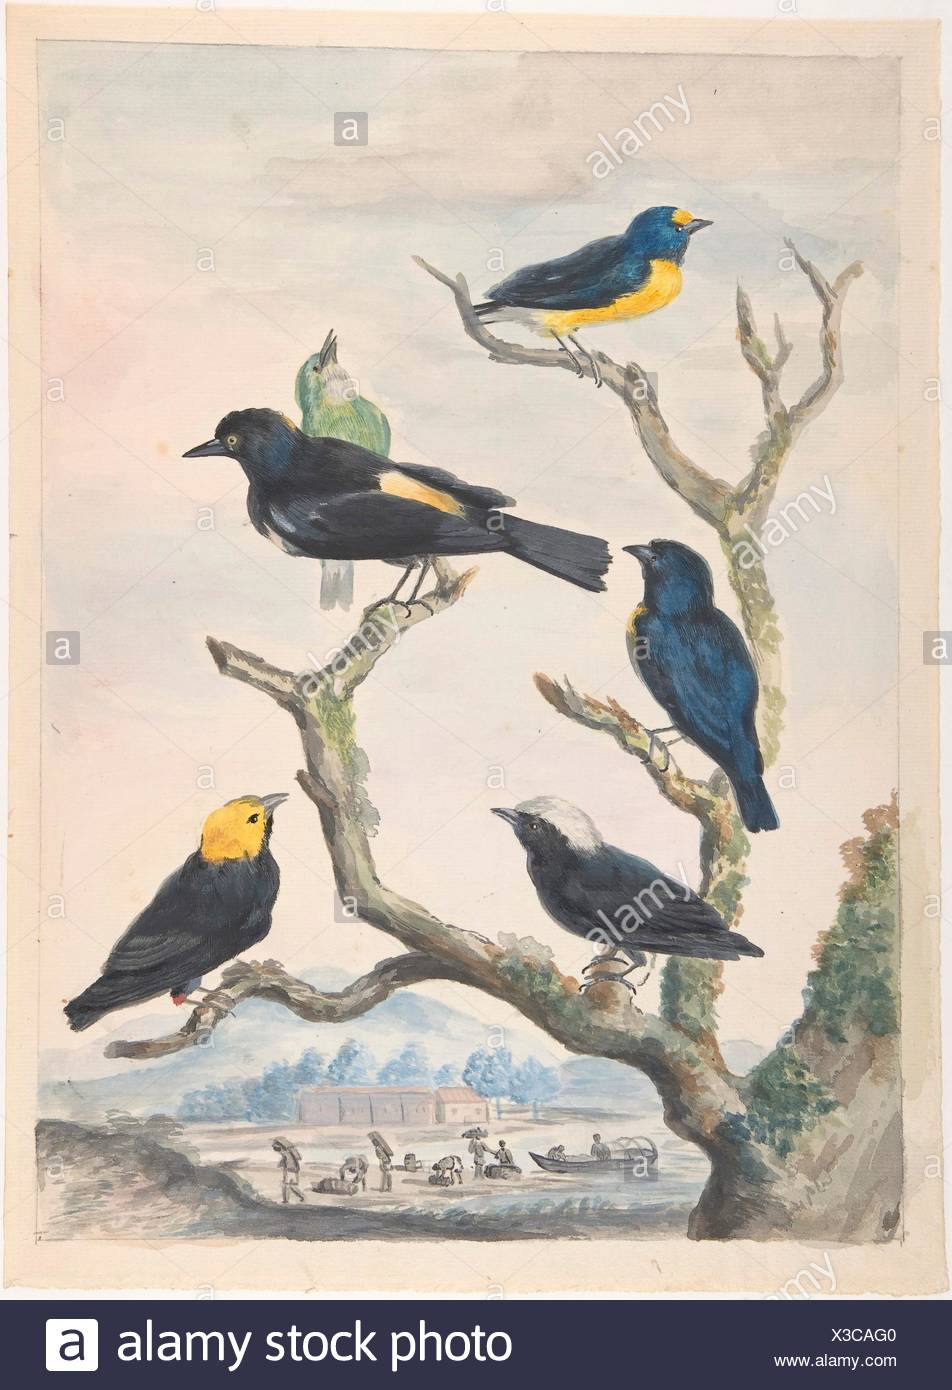 Six South American Birds. Artist: Abraham Meertens (Dutch, 1747-1823); Date: mid-18th-early 19th century; Medium: Watercolor over traces of black - Stock Image